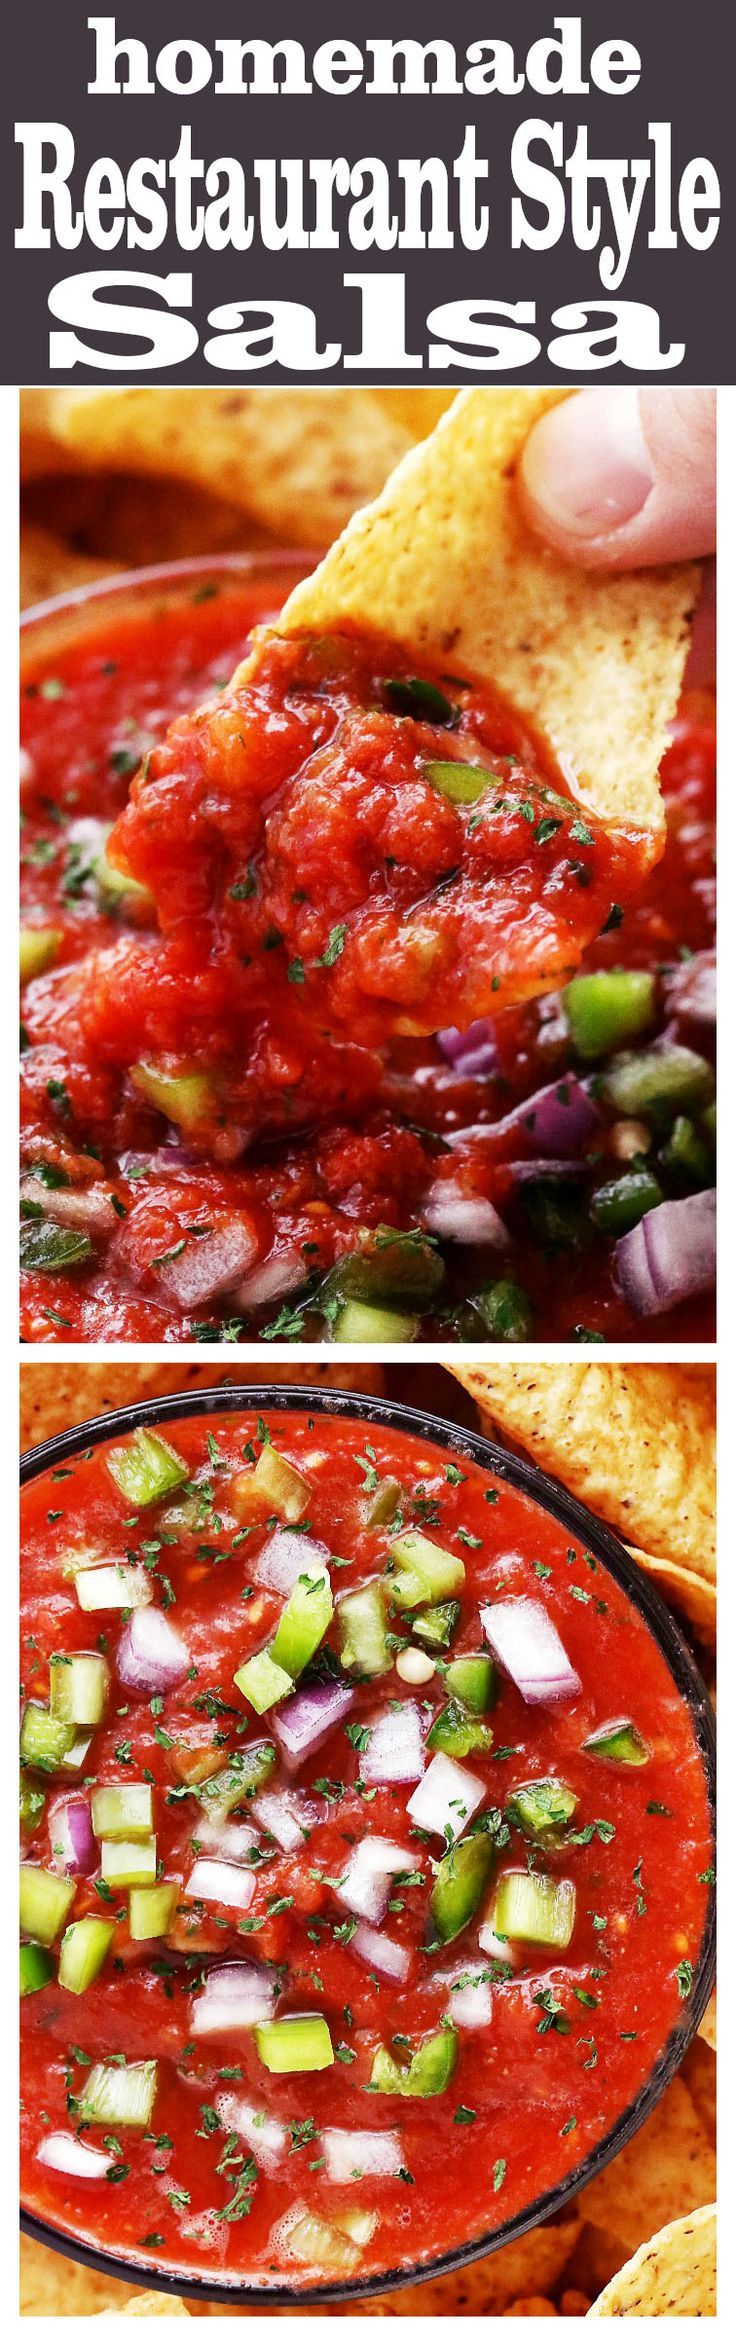 Homemade Restaurant Style Salsa - Super easy to make chunky homemade salsa made with delicious ingredients, and 1000x better than any store-bought version. Takes minutes to whip up and tastes amazing!